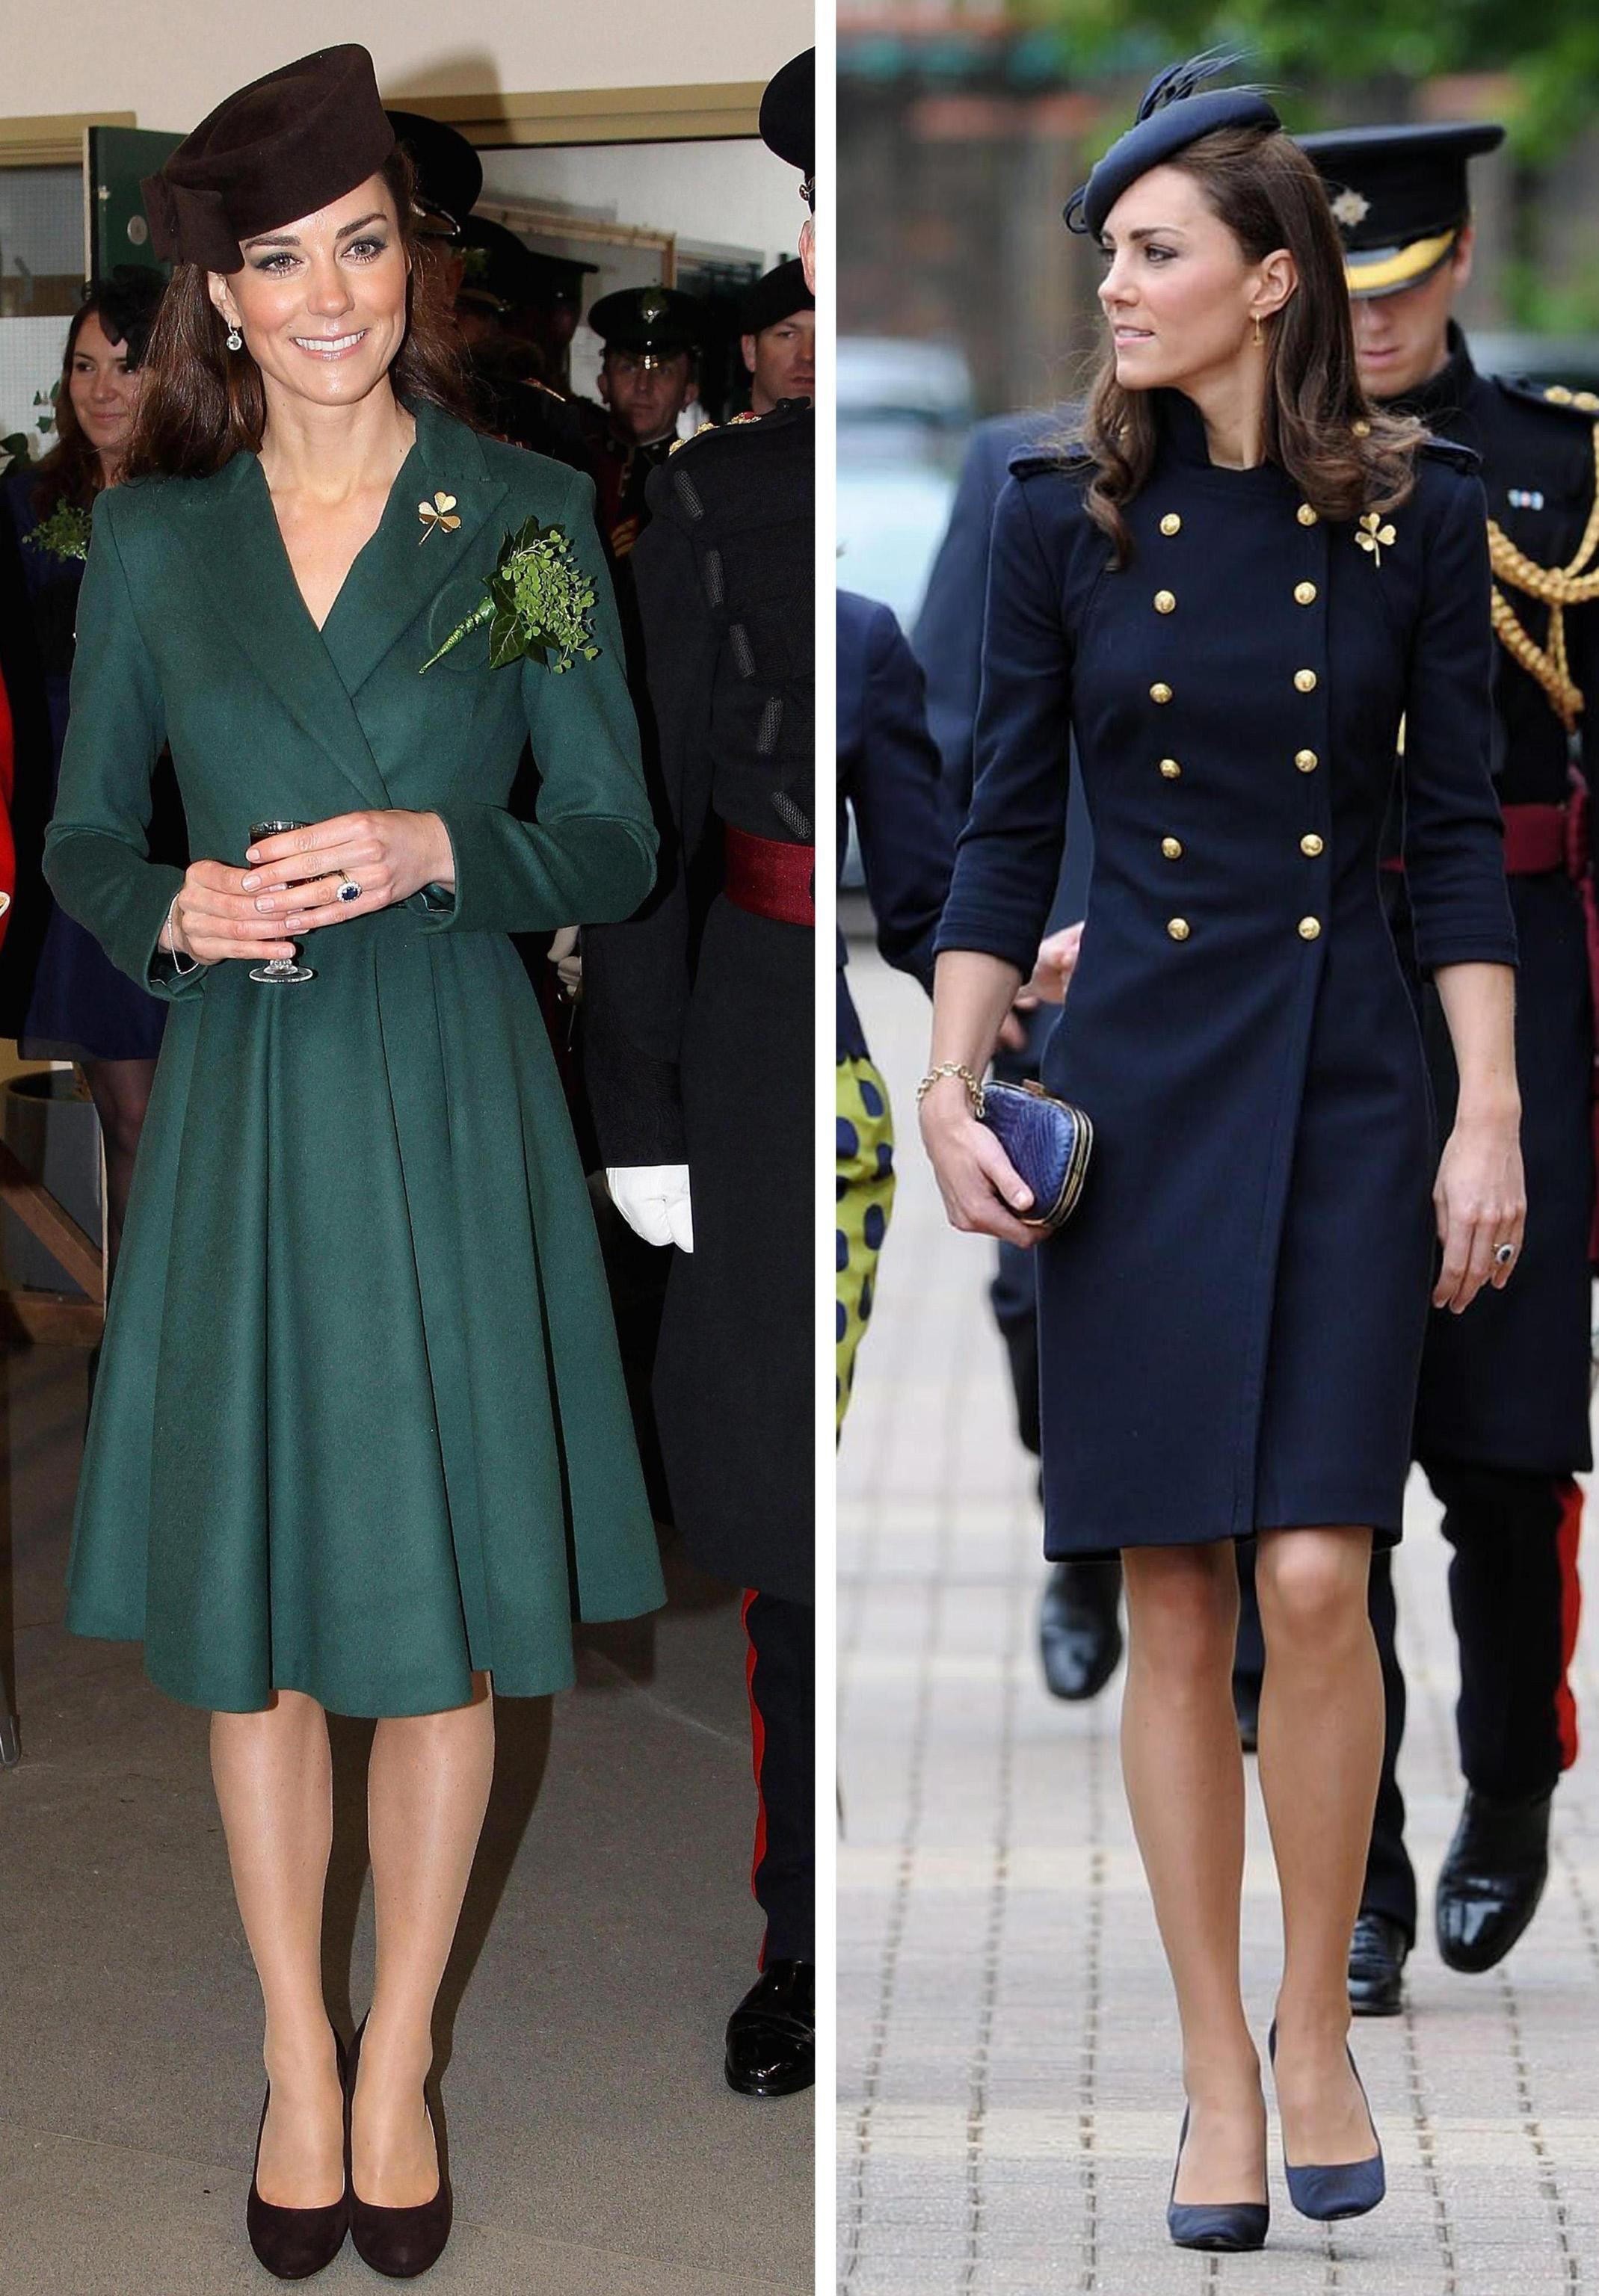 Kate Middleton cappello